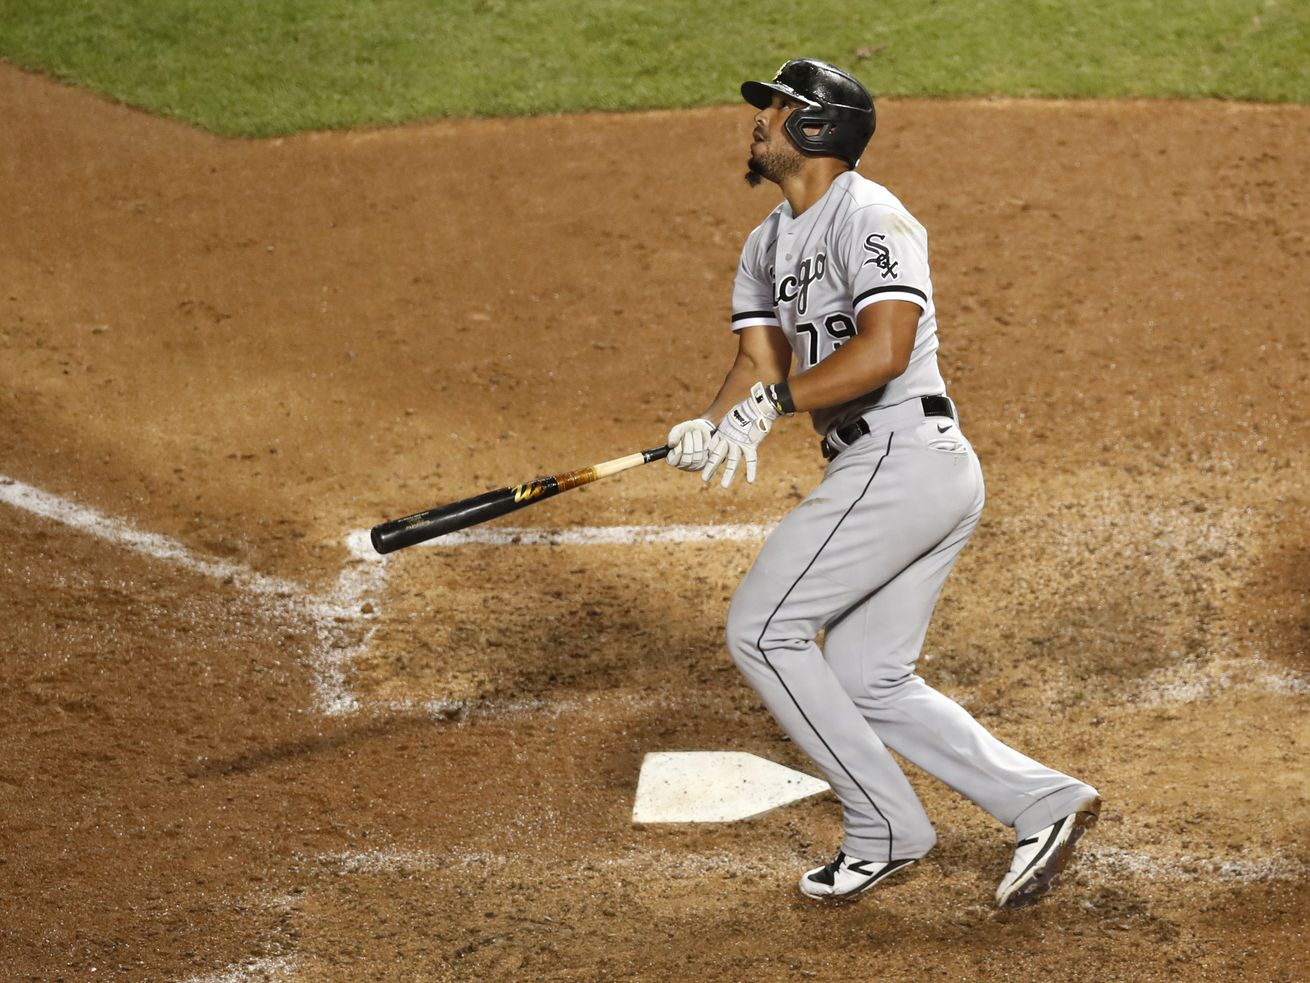 White Sox home run binge continues, with Jose Abreu leading the way